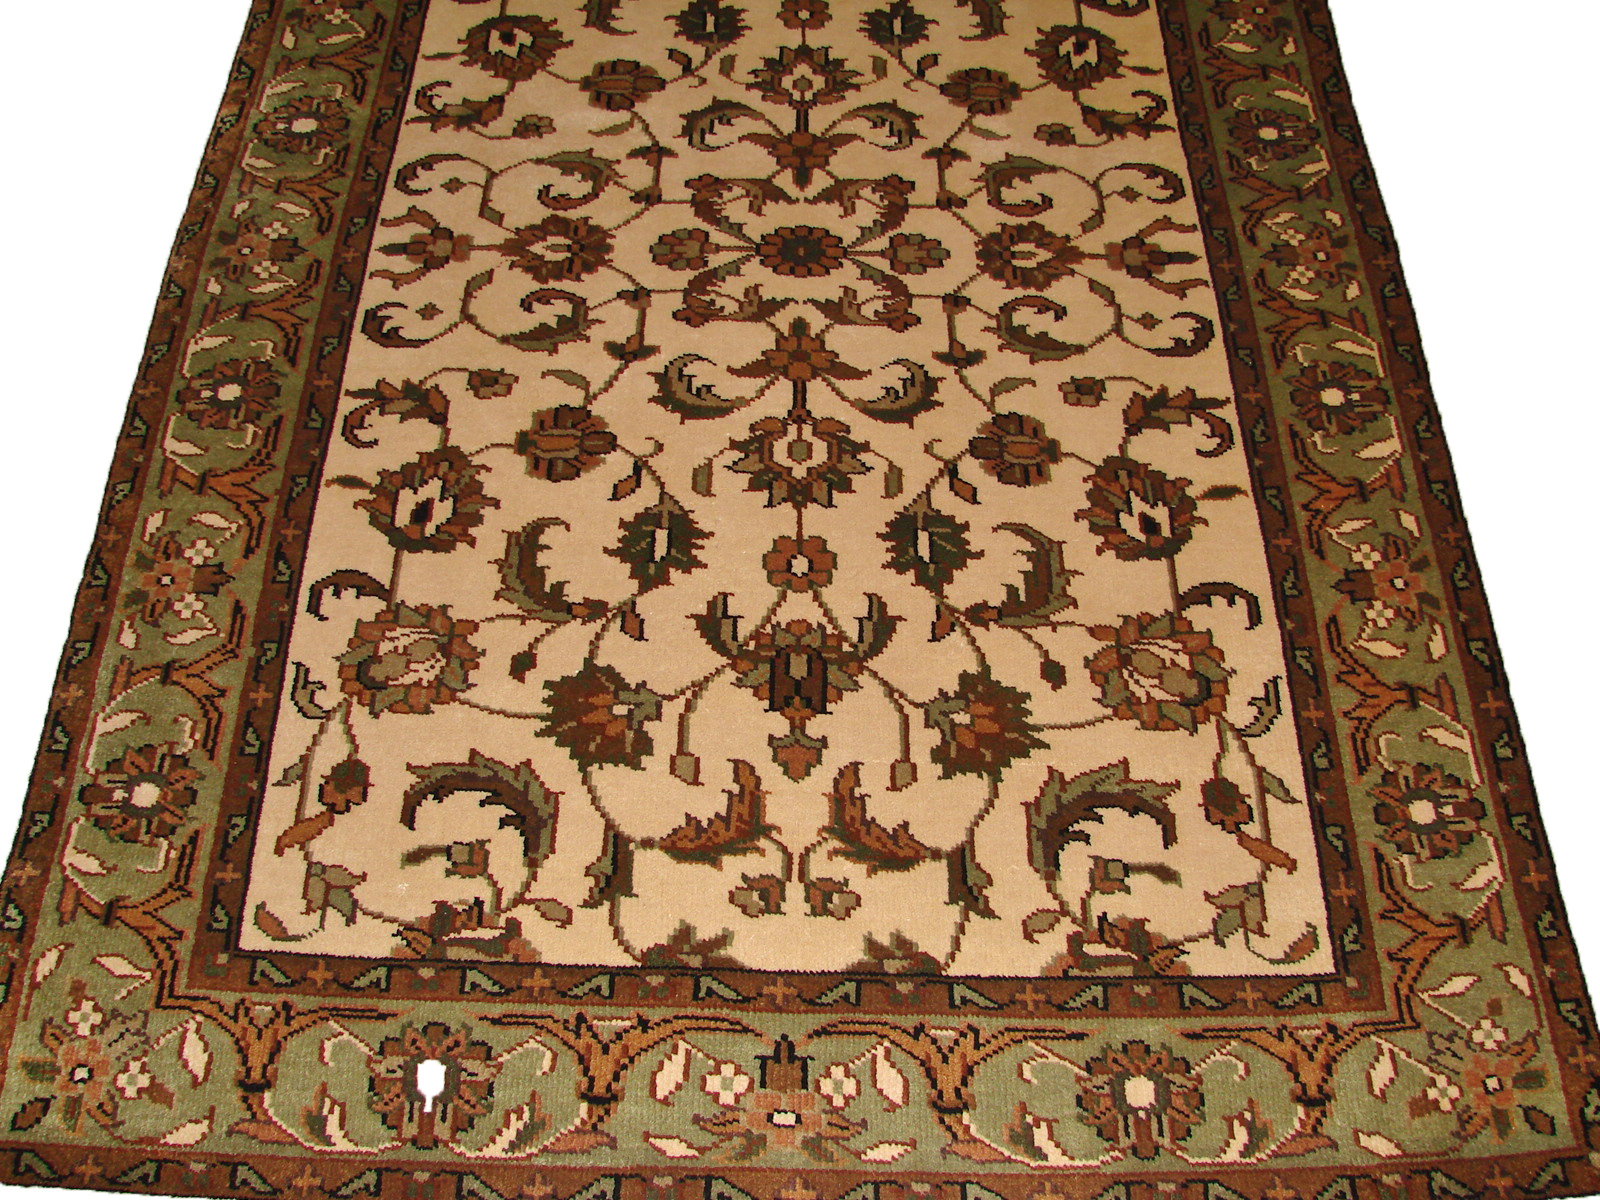 Clearance Rugs & Discontinued Rugs-KASHAN-683-Oriental Designer Rugs